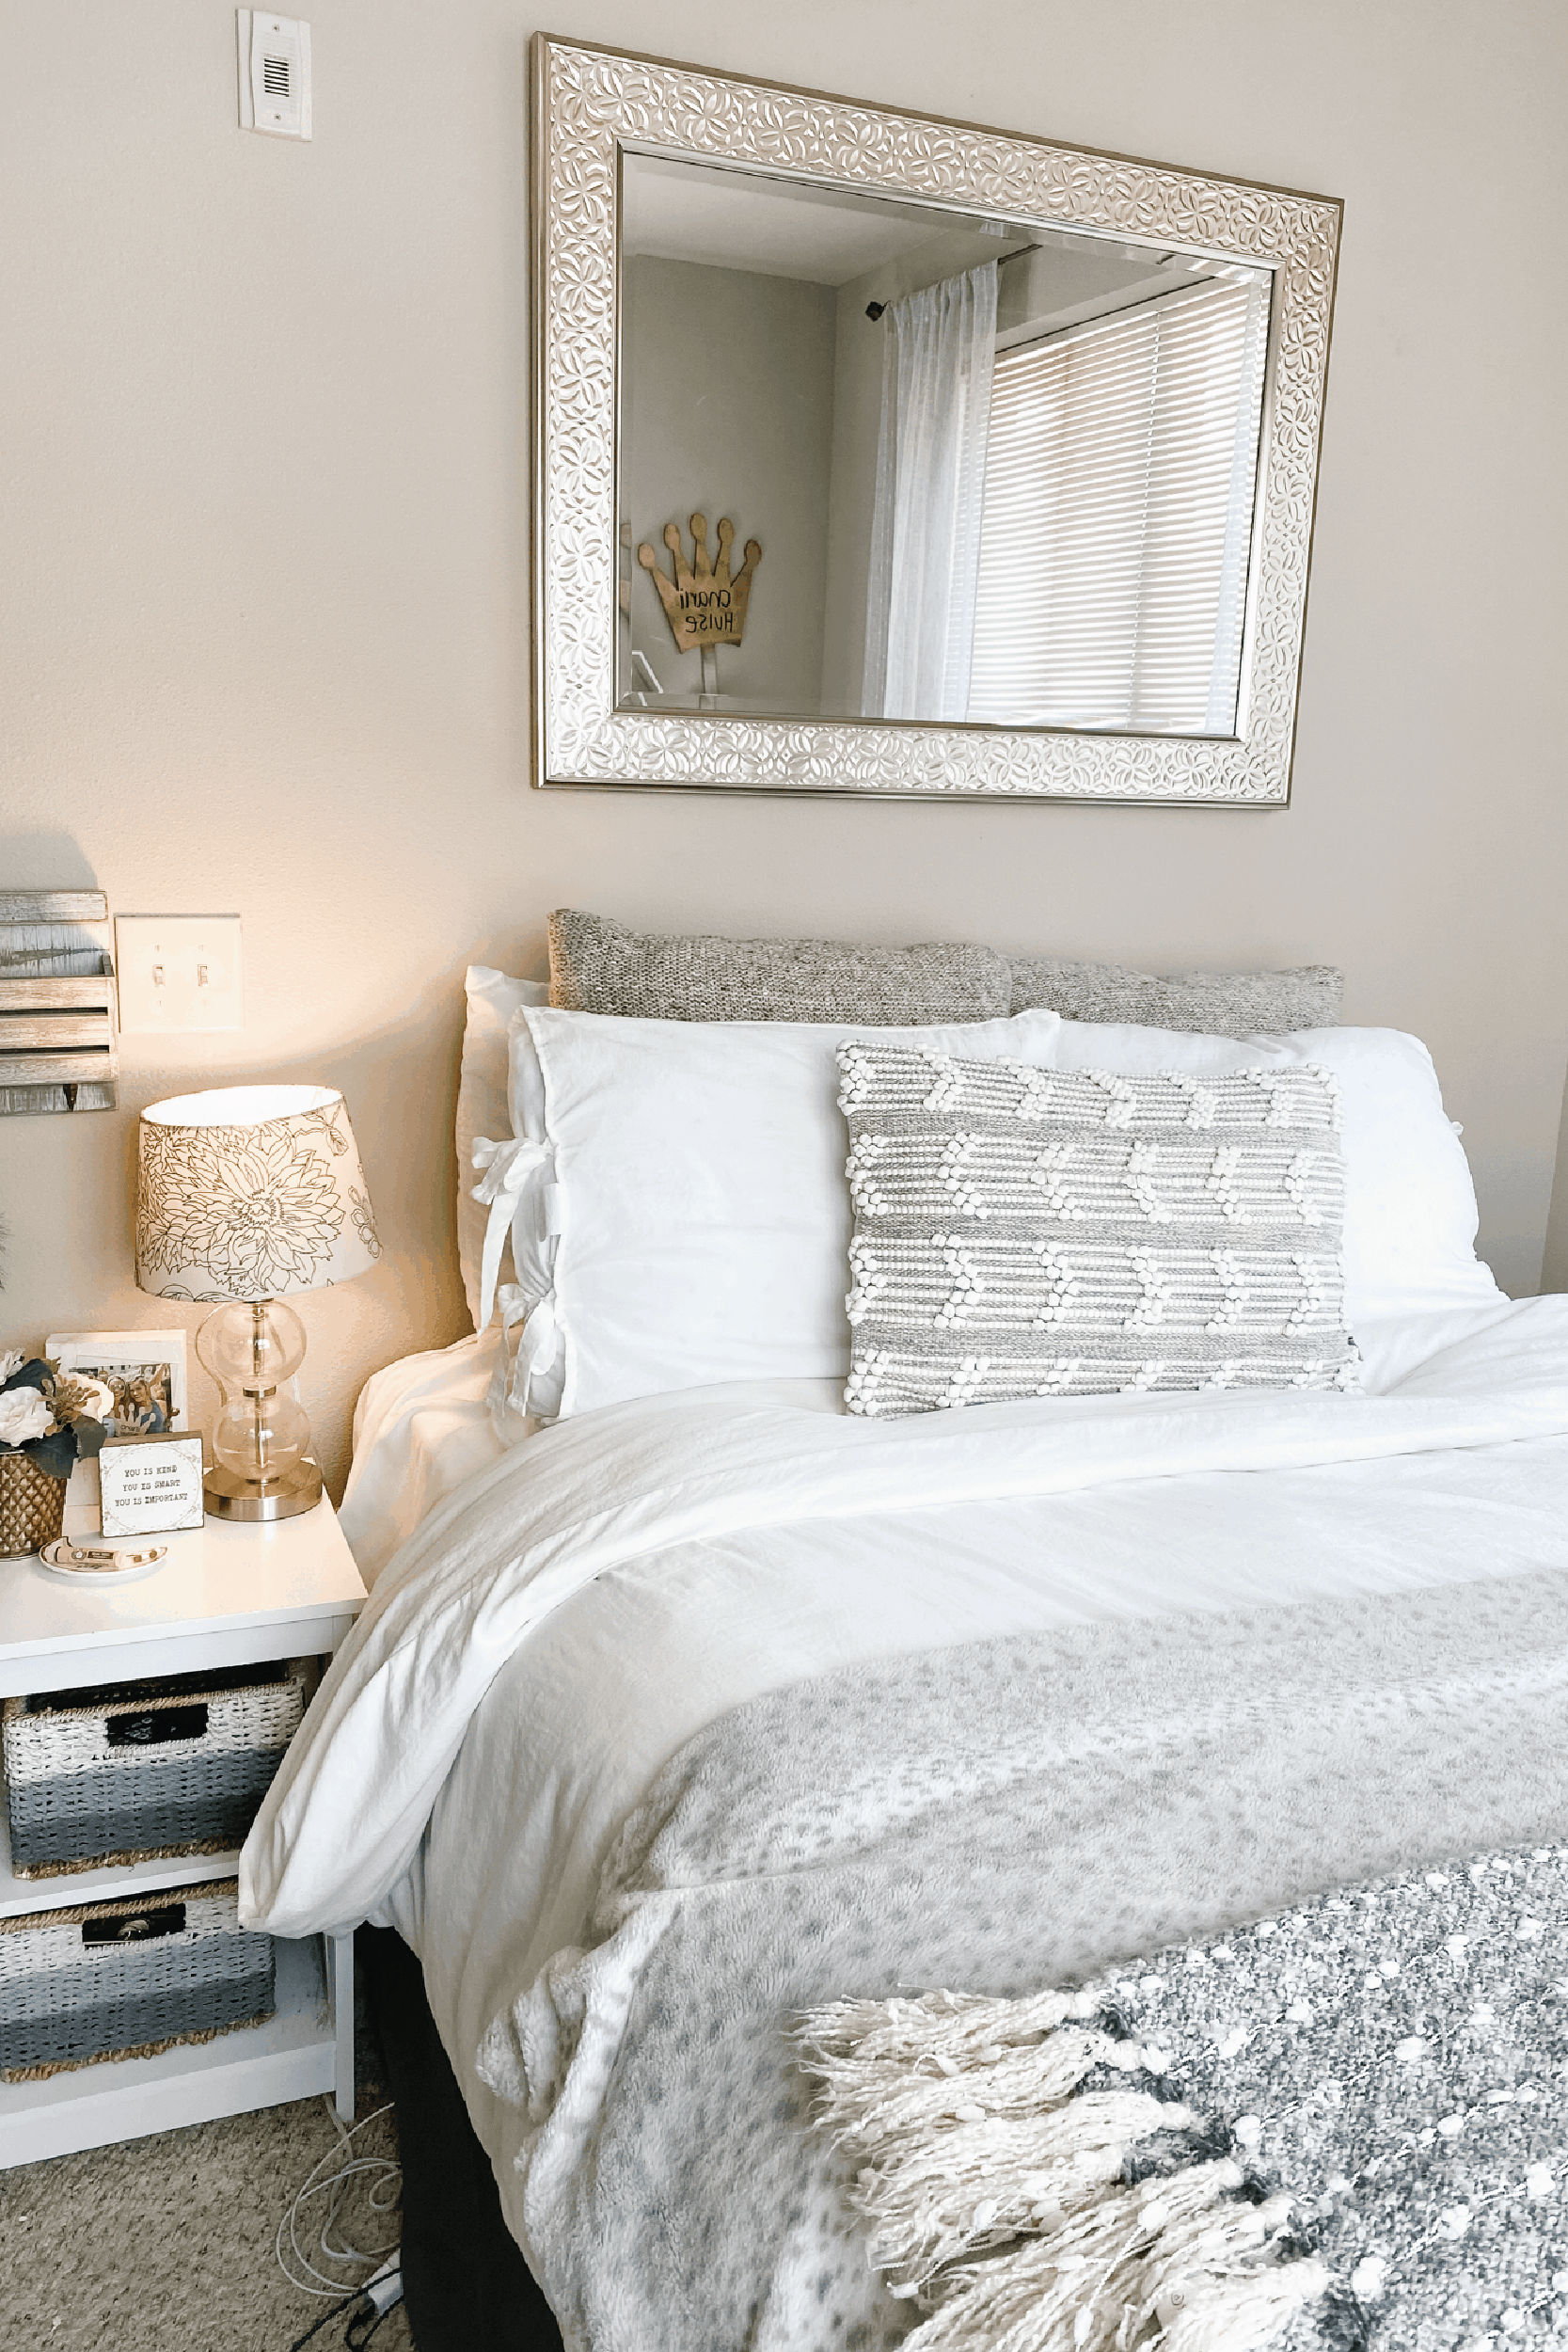 21 Best College Apartment Bedroom Ideas You Need To Use By Sophia Lee